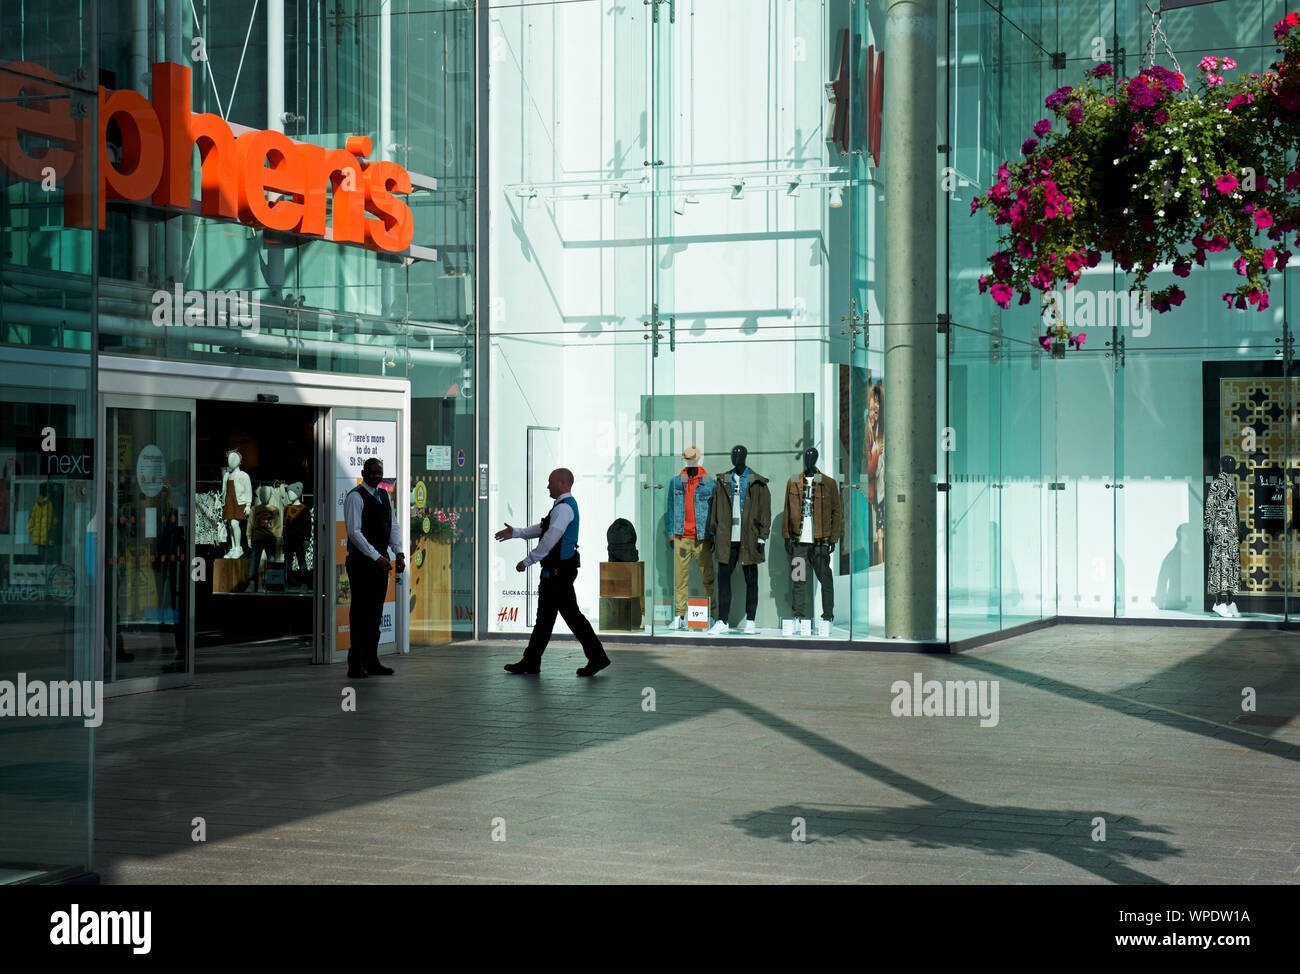 st-stephens-shopping-centre-hull-east-yorkshire-england-uk-WPDW1A.jpg